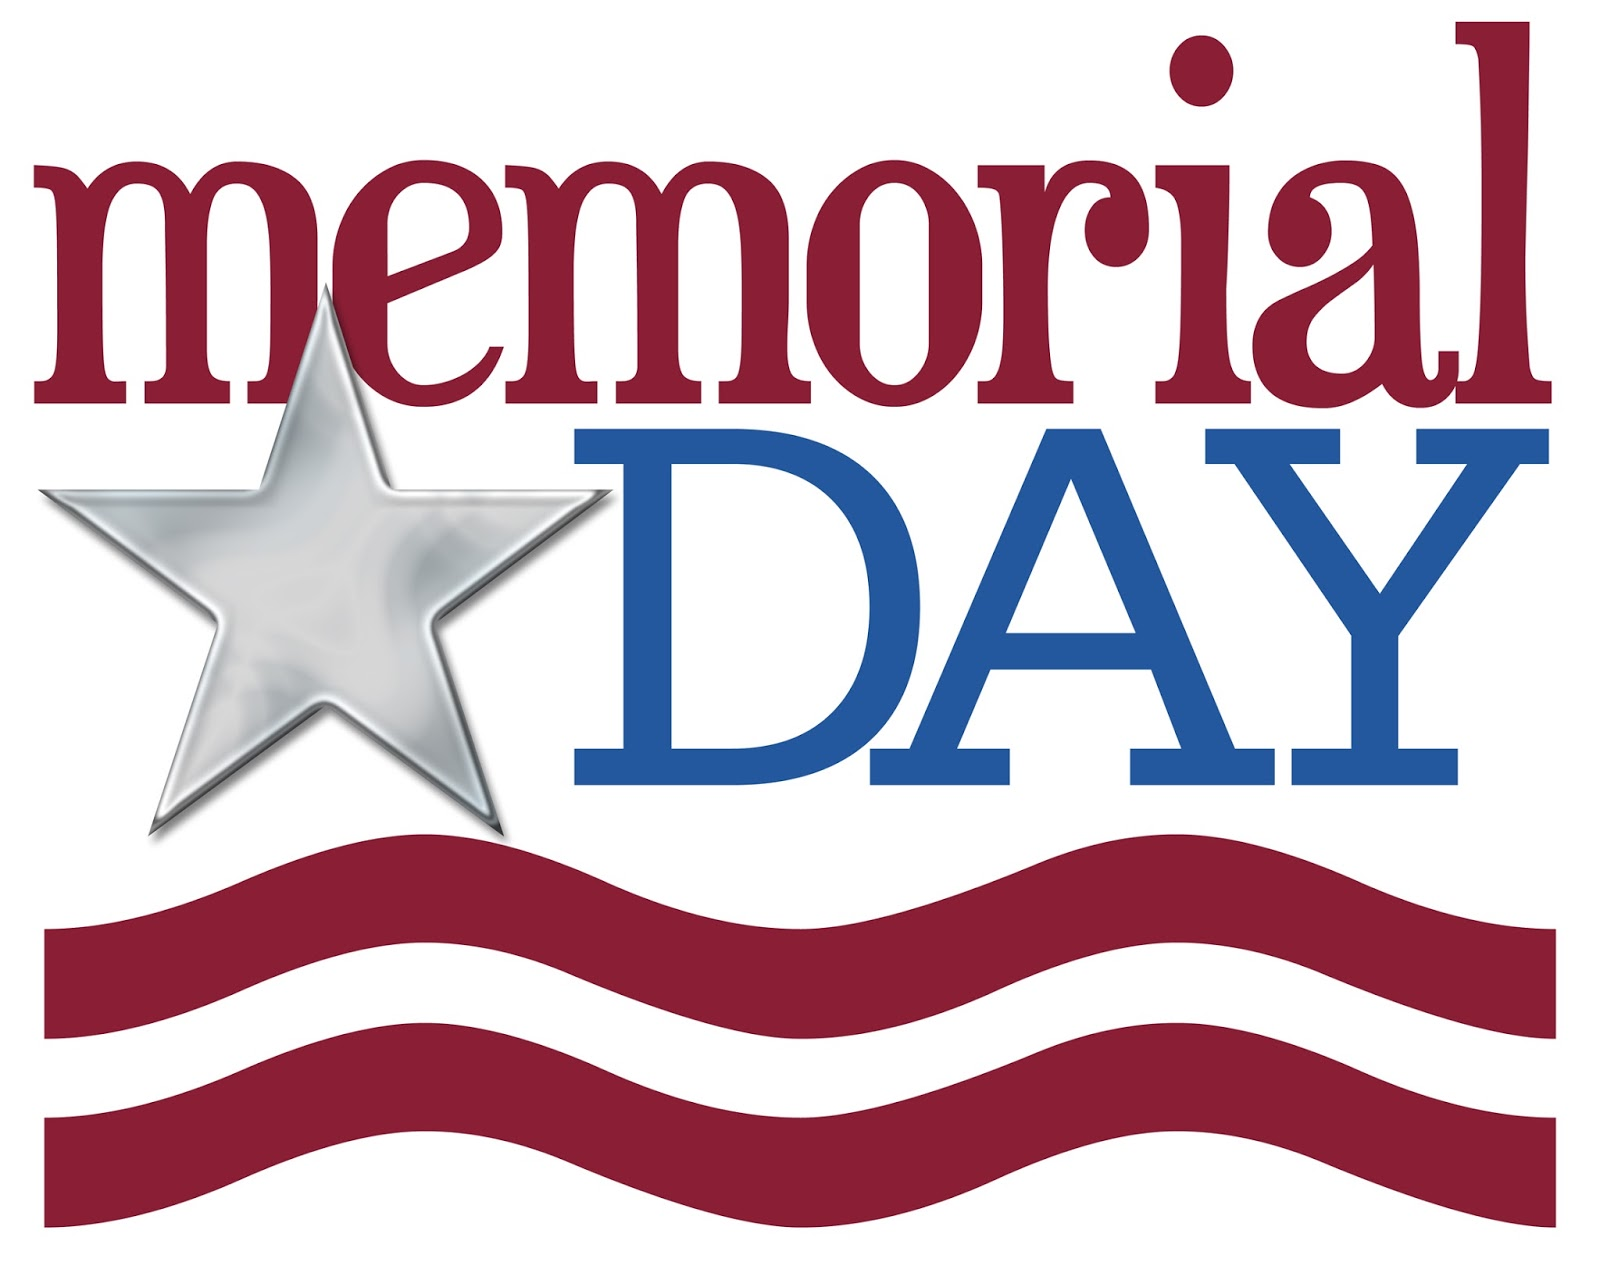 Best Memorial Day Clipart Free Download 2017 intended for free animated clipart memorial day for your inspiration